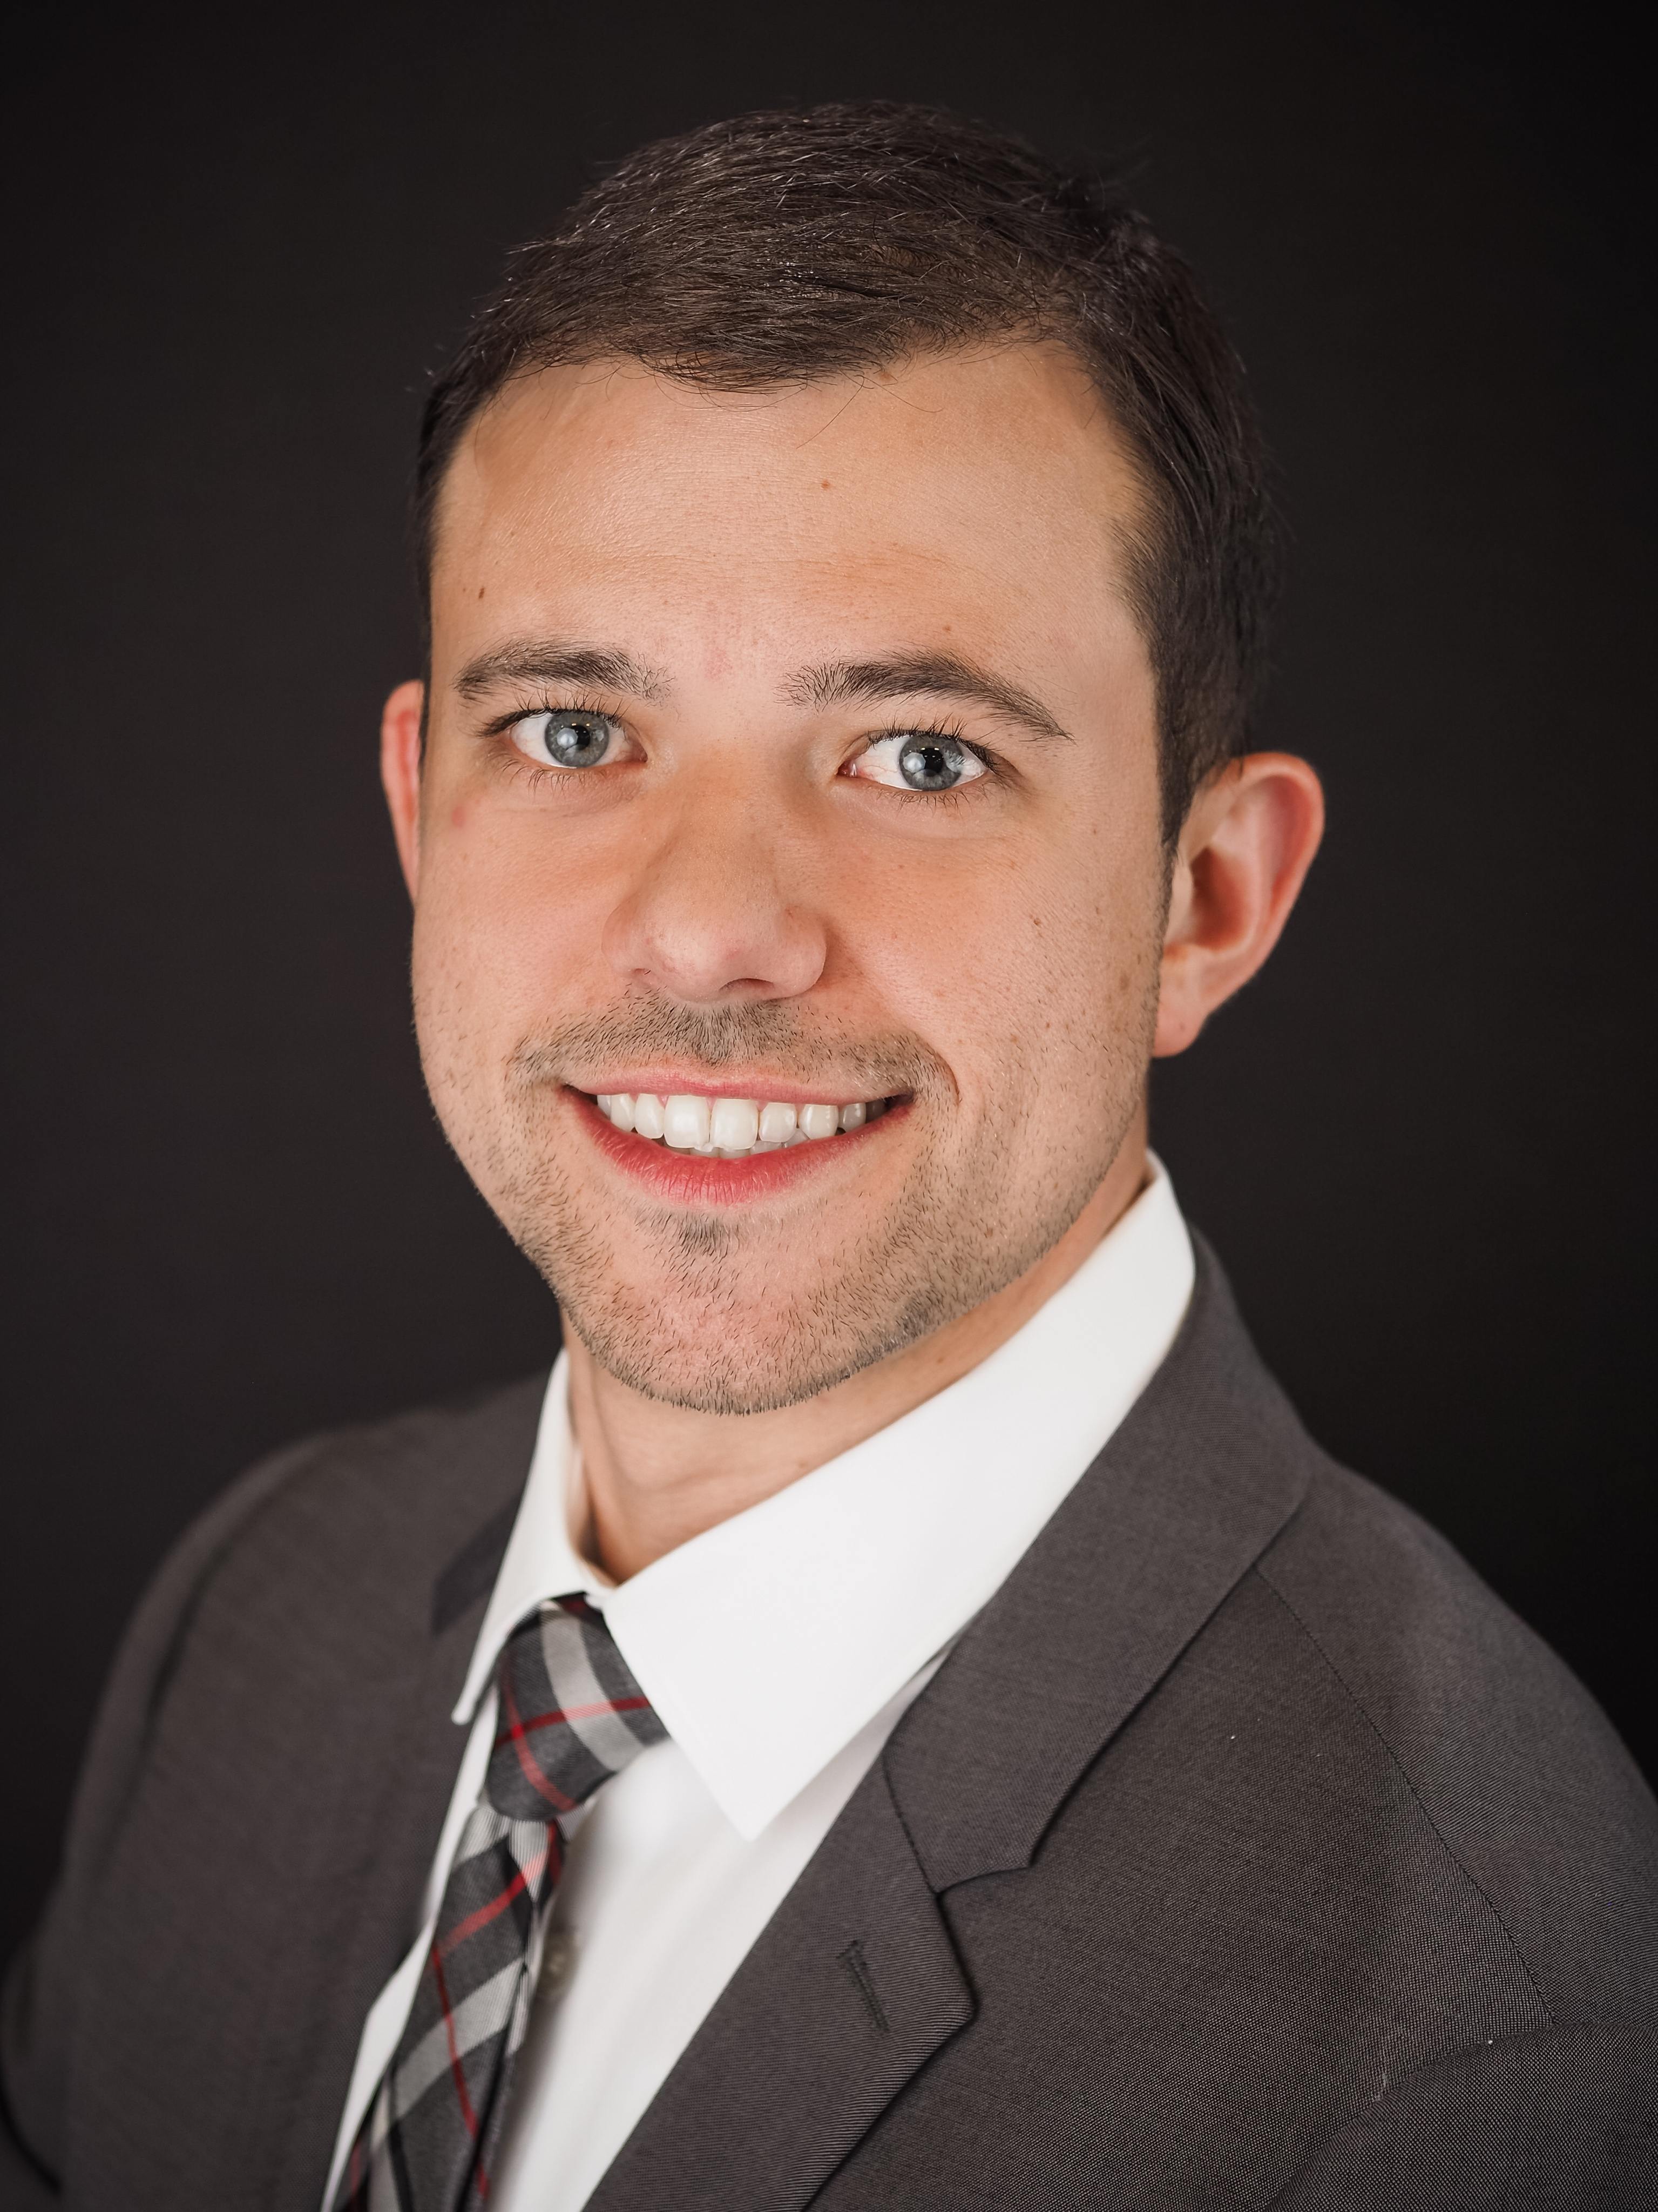 Lane Welcomes Podiatrist Kyle Lindow